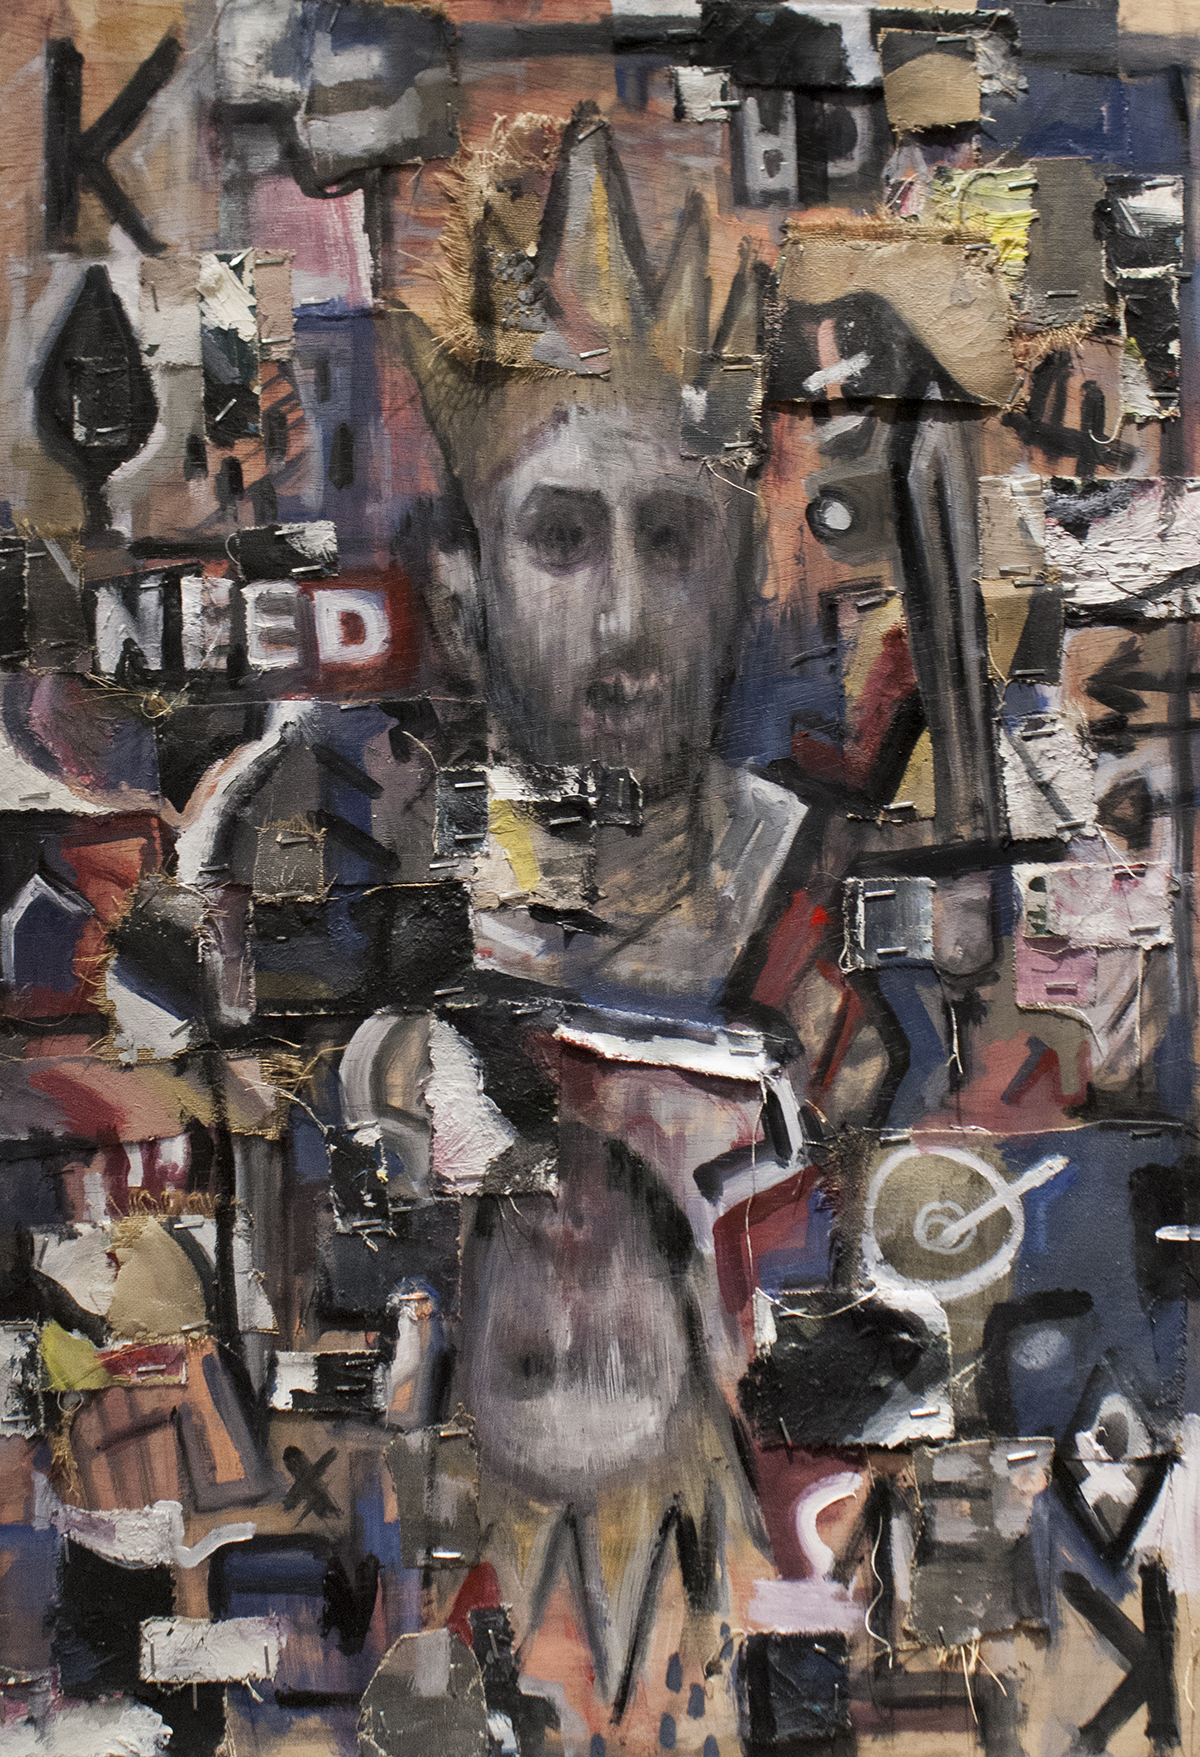 King Of Spades / Mixed Media on Wood / 44 x 65.5 cm / 2018